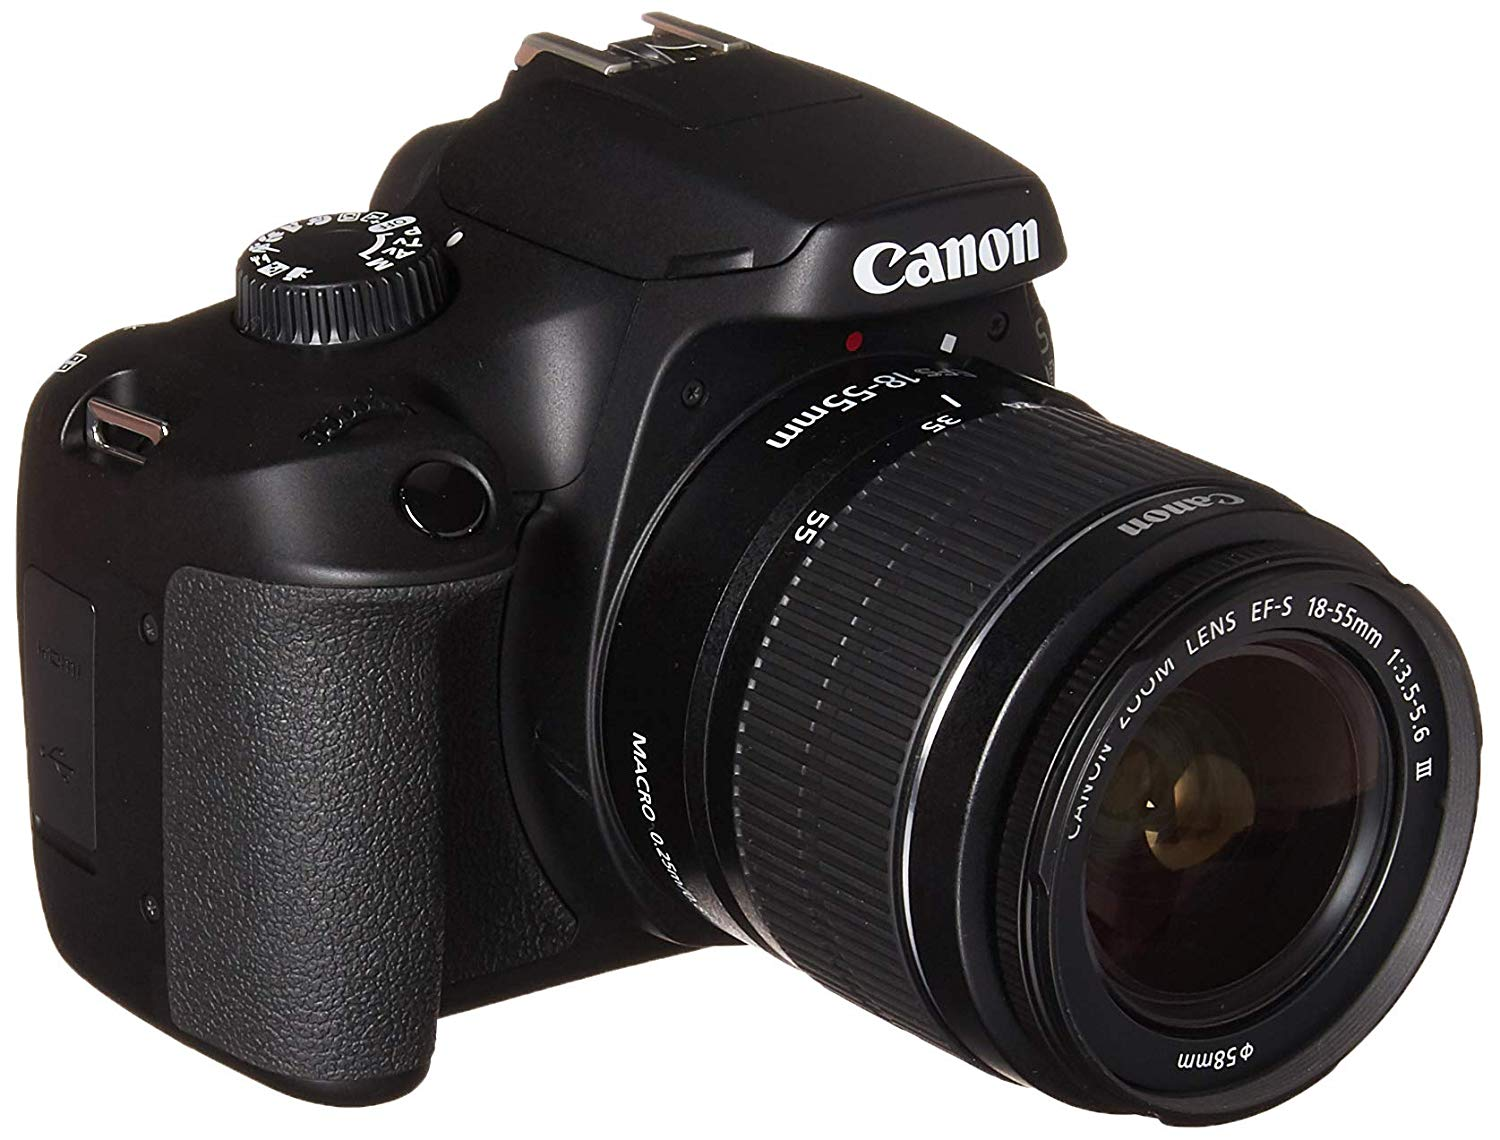 Canon EOS 4000D DSLR Camera With EF-S 18-55mm III Lens Kit